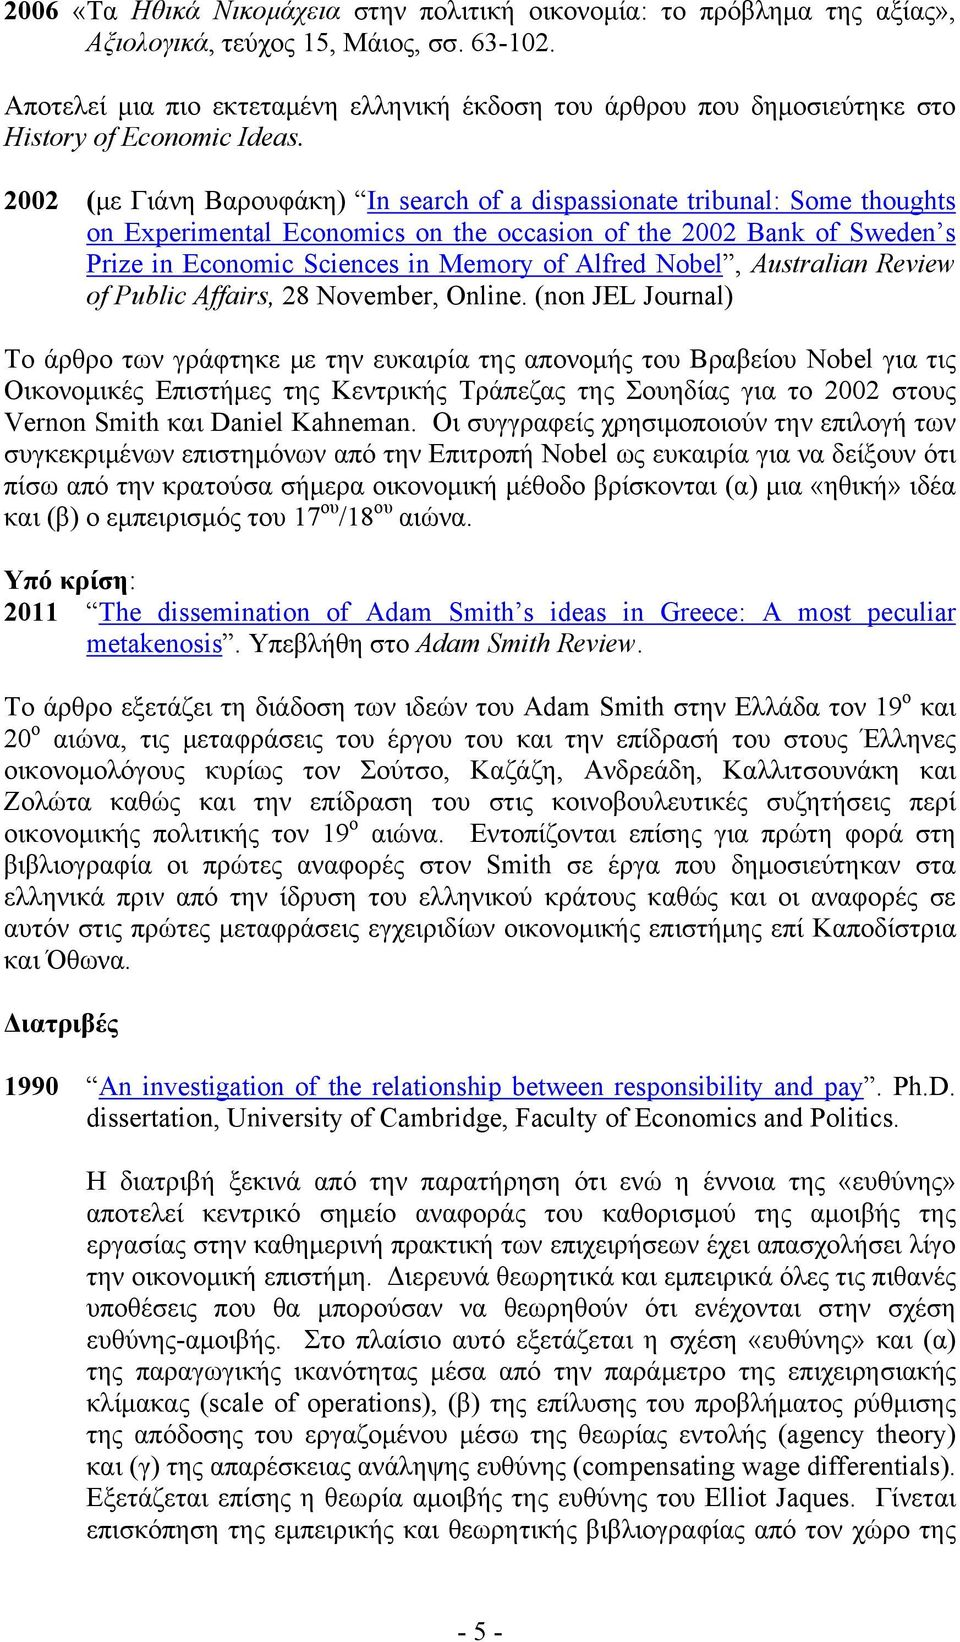 2002 (με Γιάνη Βαρουφάκη) In search of a dispassionate tribunal: Some thoughts on Experimental Economics on the occasion of the 2002 Bank of Sweden s Prize in Economic Sciences in Memory of Alfred